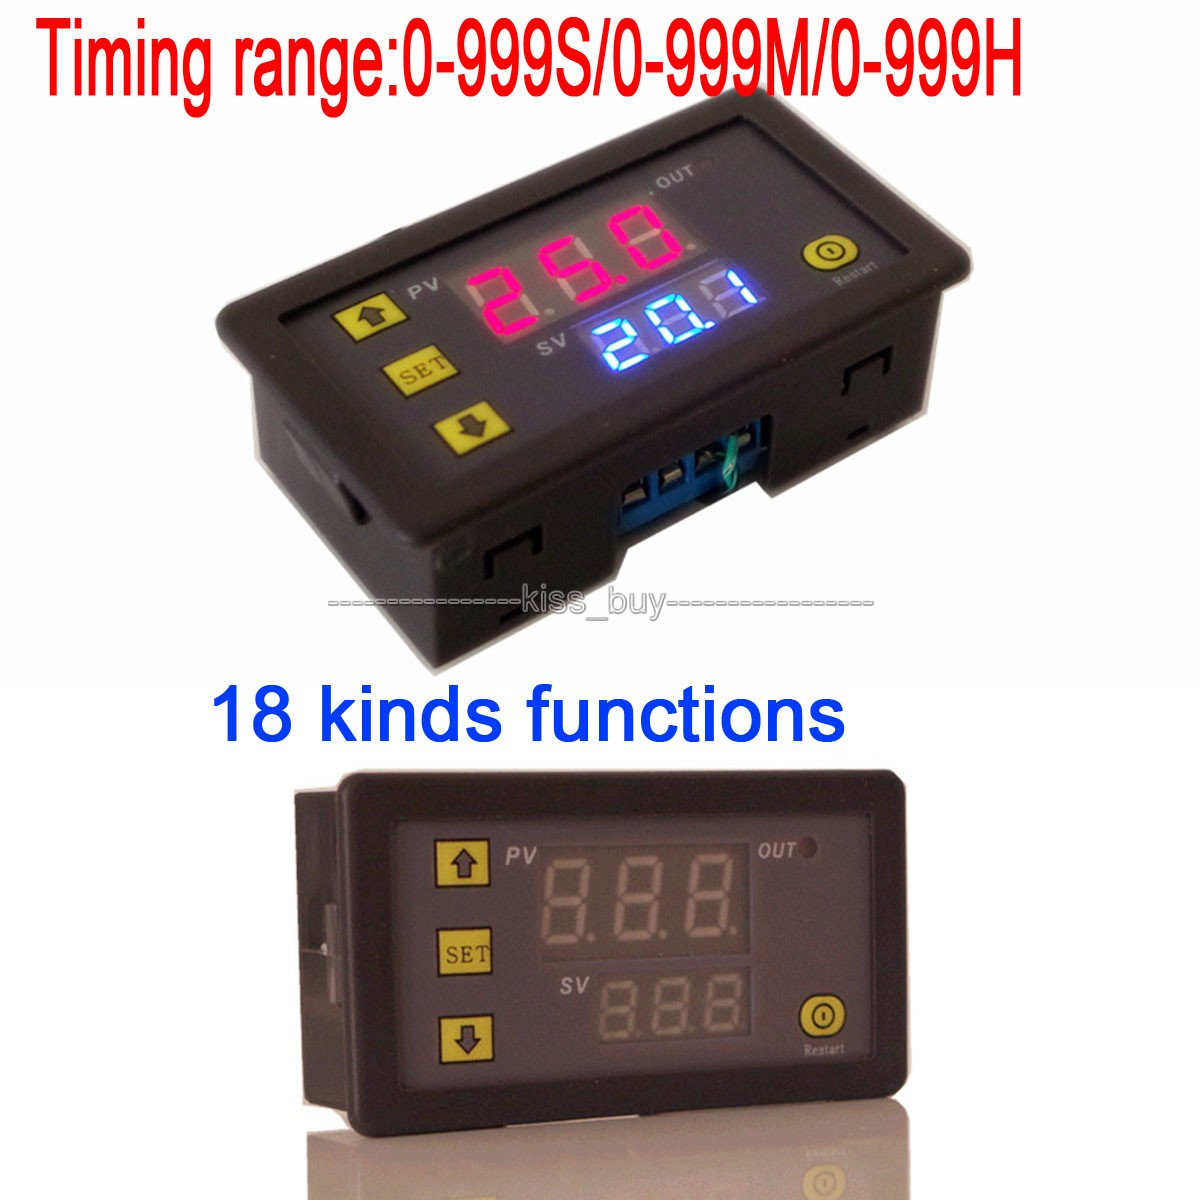 Dc 24v Cycle Timer Delay Time Switch Digital Dual Display Relay How Do I Wire A 12v Motor To Micro Switches Module 0 999 Hr